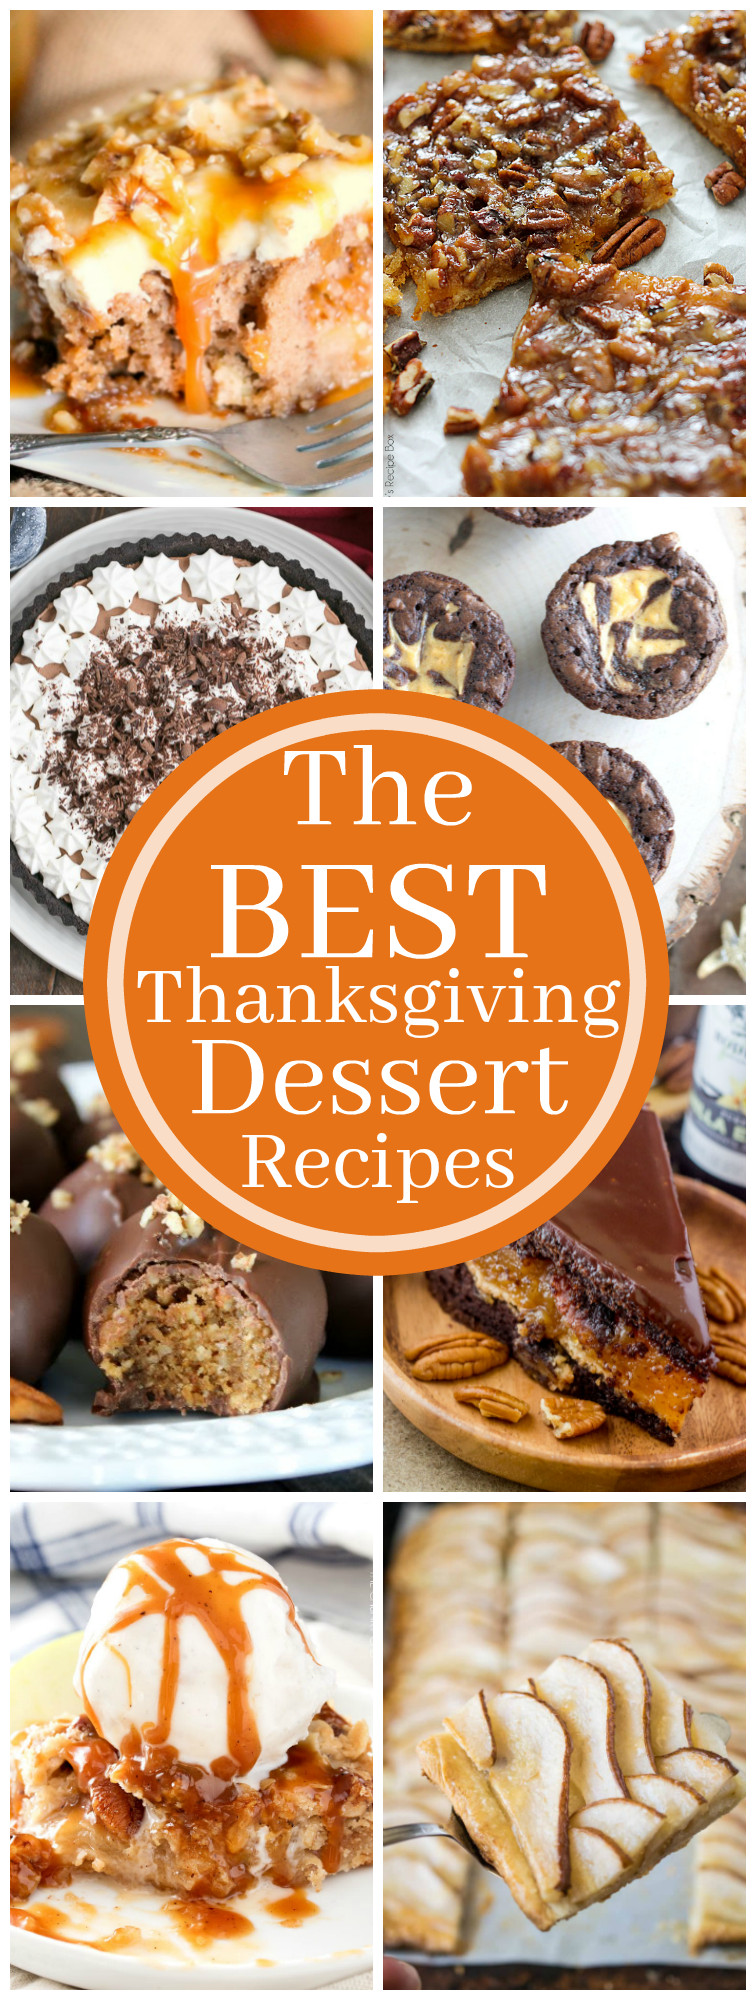 Best Thanksgiving Pies Recipes  The Best Thanksgiving Dessert Recipes The Chunky Chef